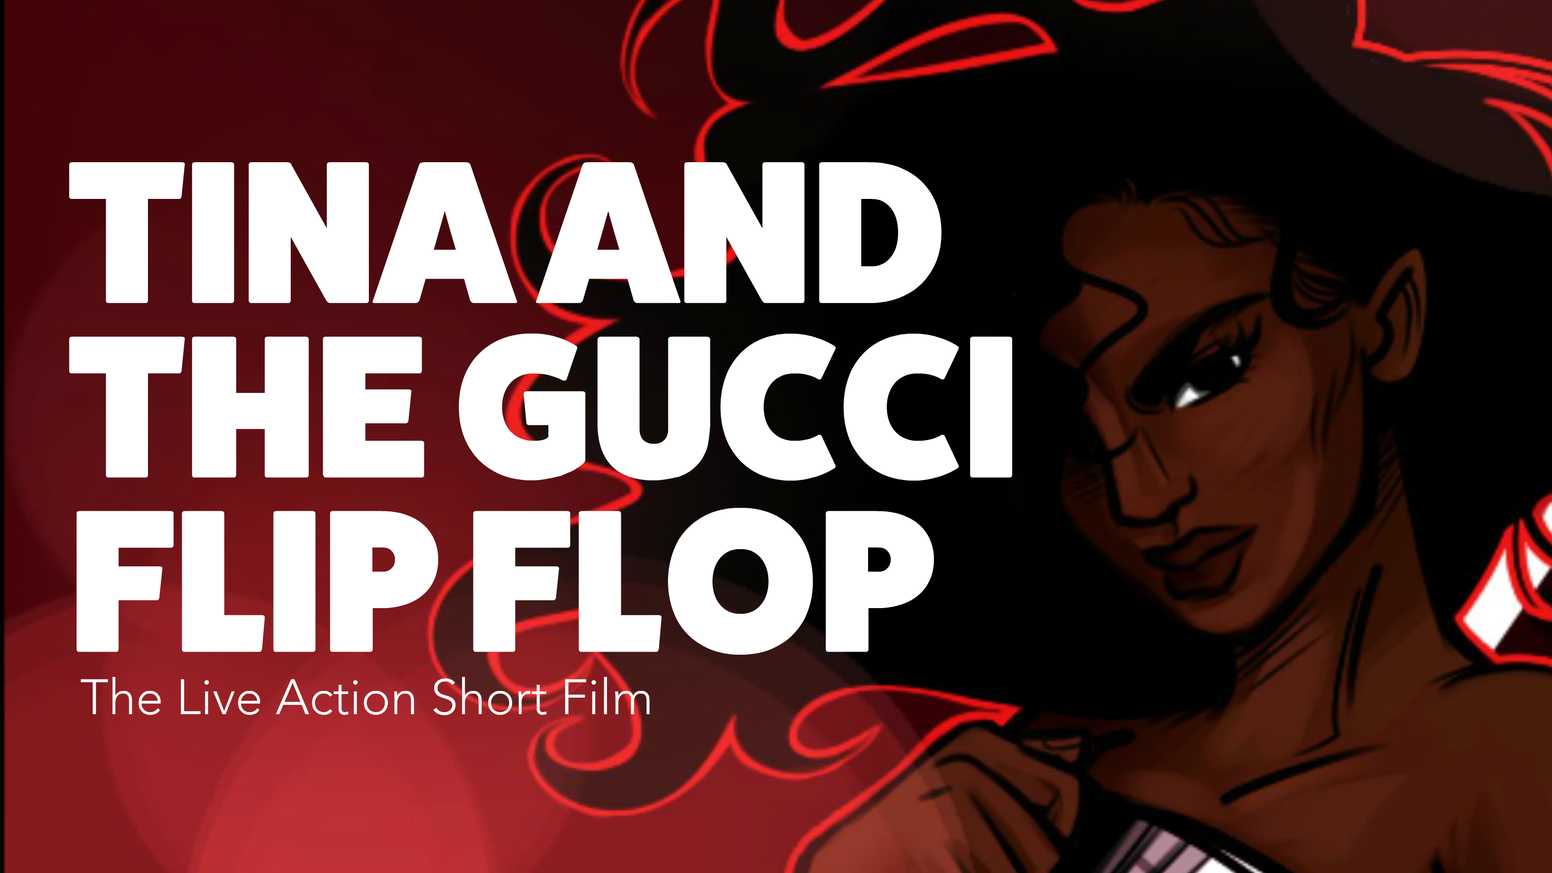 We're making a live action short film of Tina & The Gucci Flip Flop, the viral Twitter story by @XLNB.